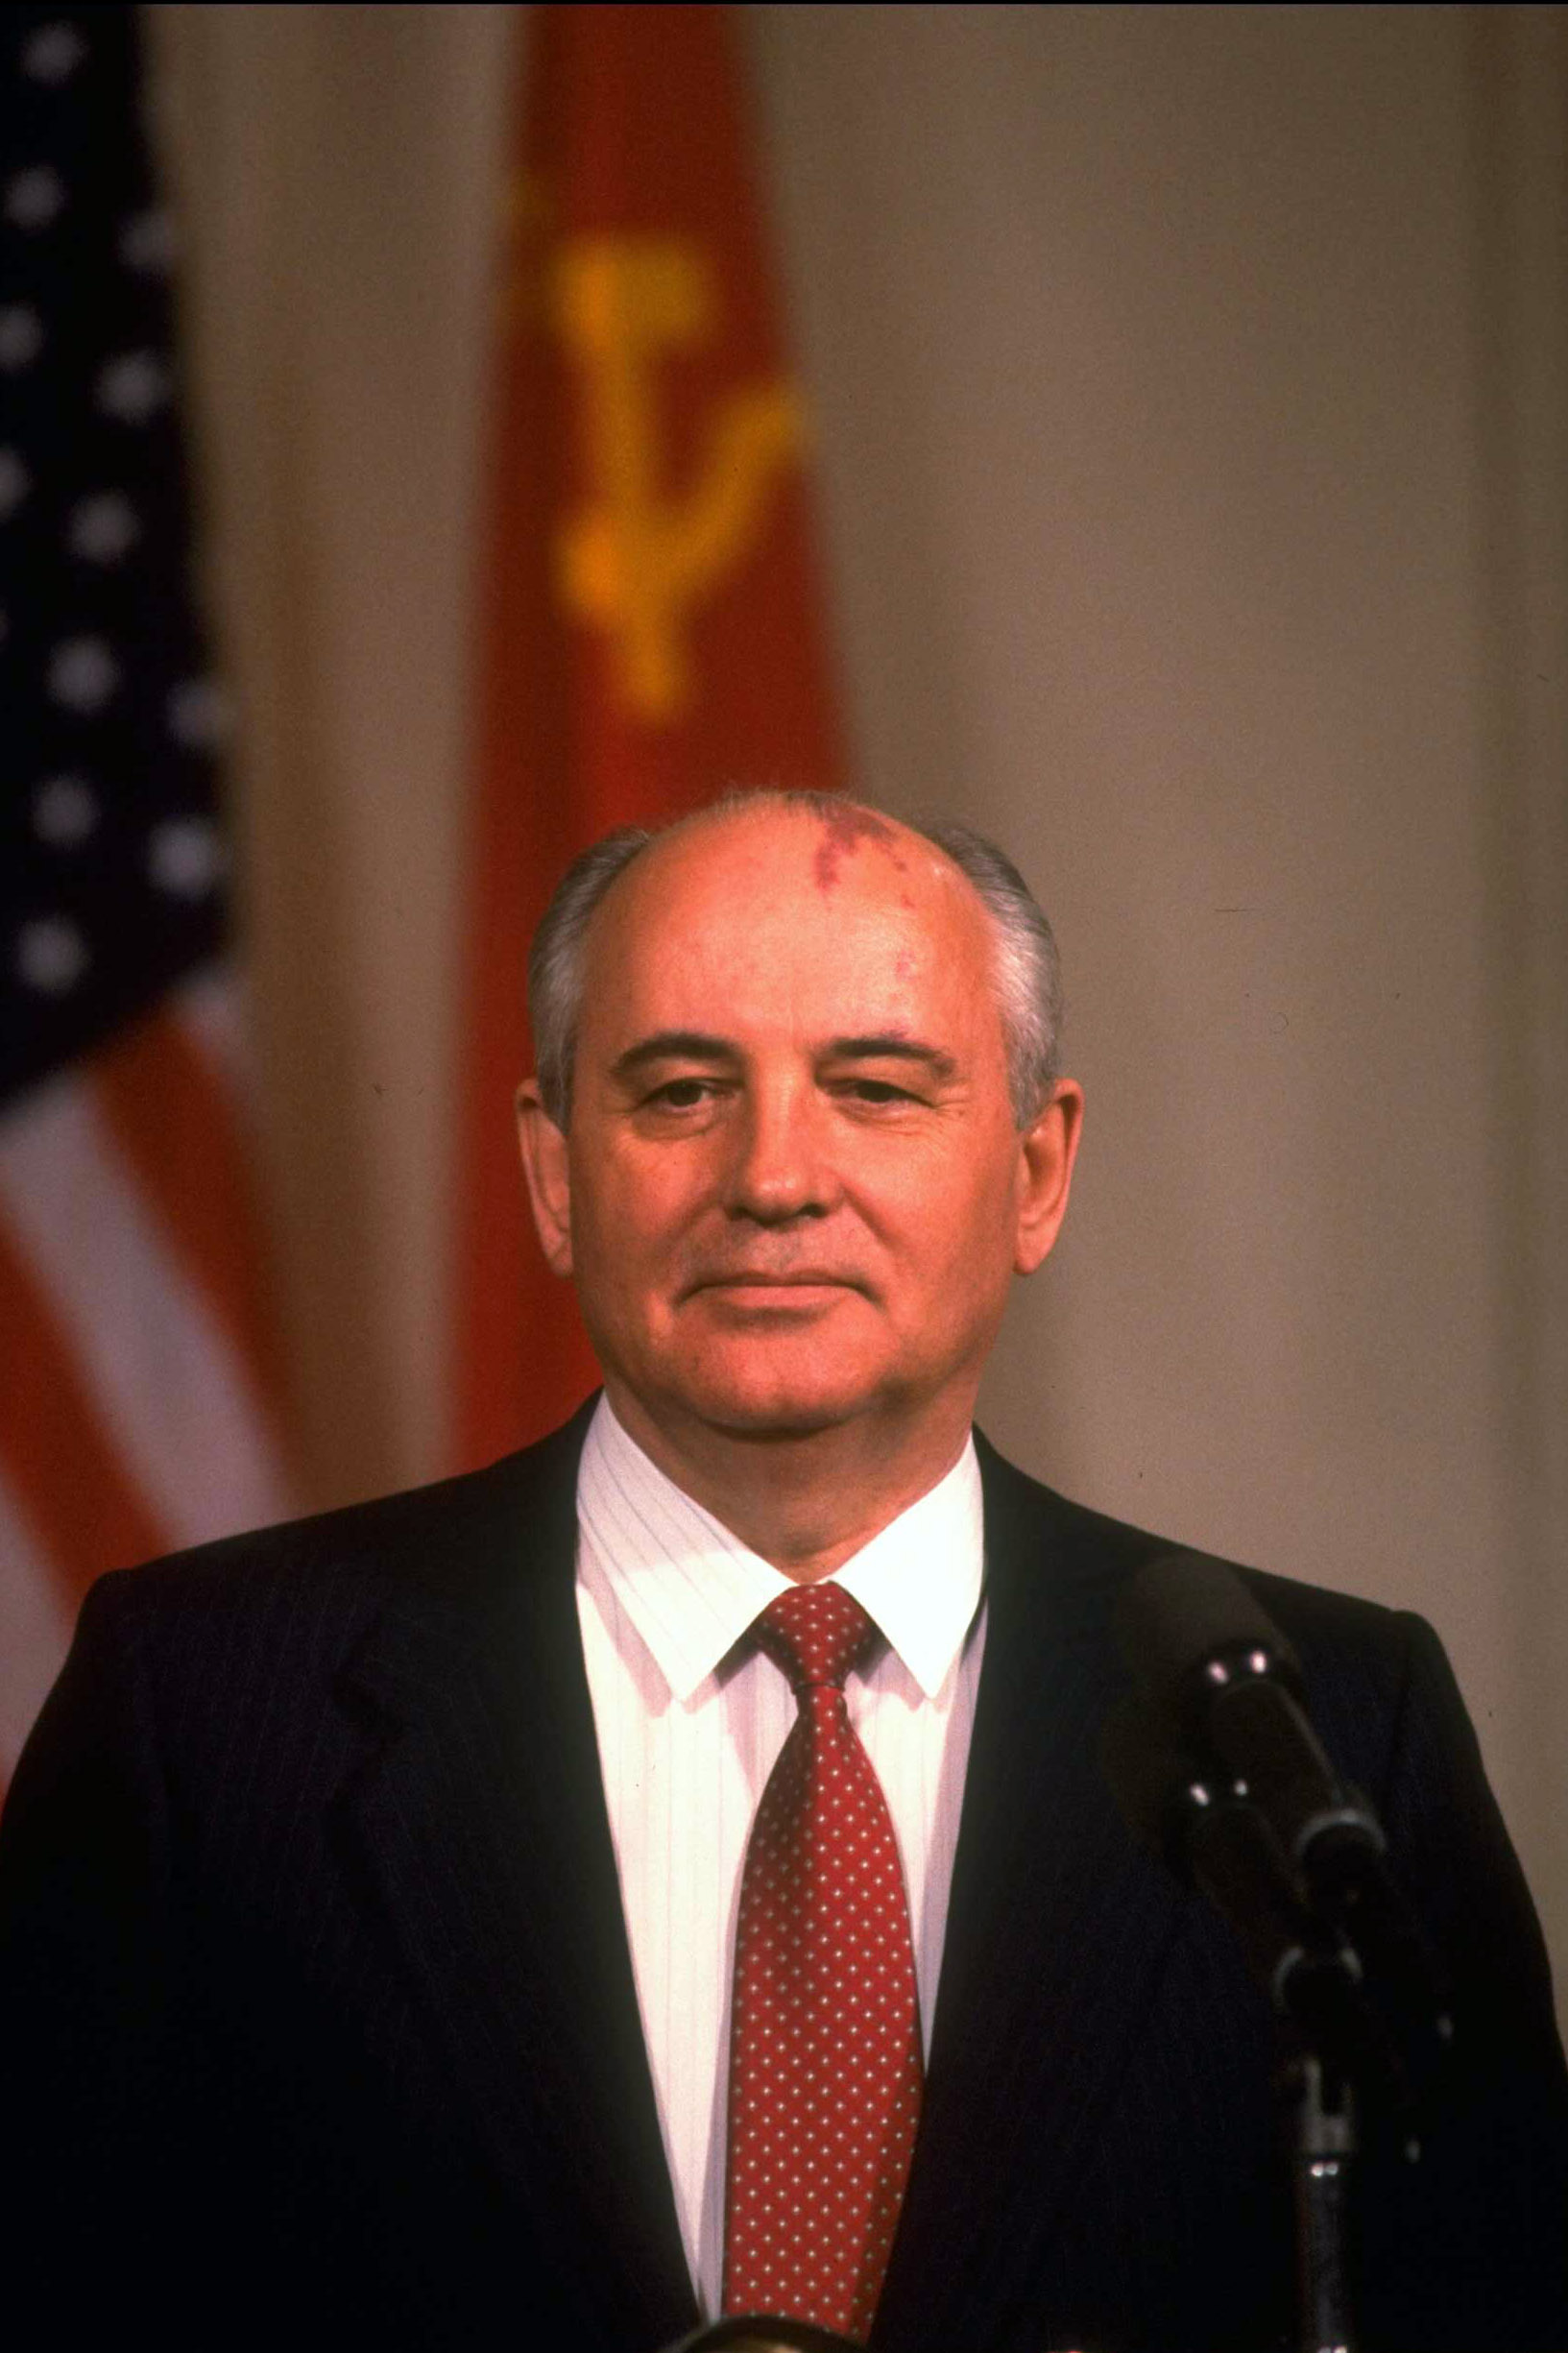 """<b>Mikhail Gorbachev, 1990</b>""""For his leading role in the peace process which today characterizes important parts of the international community"""""""